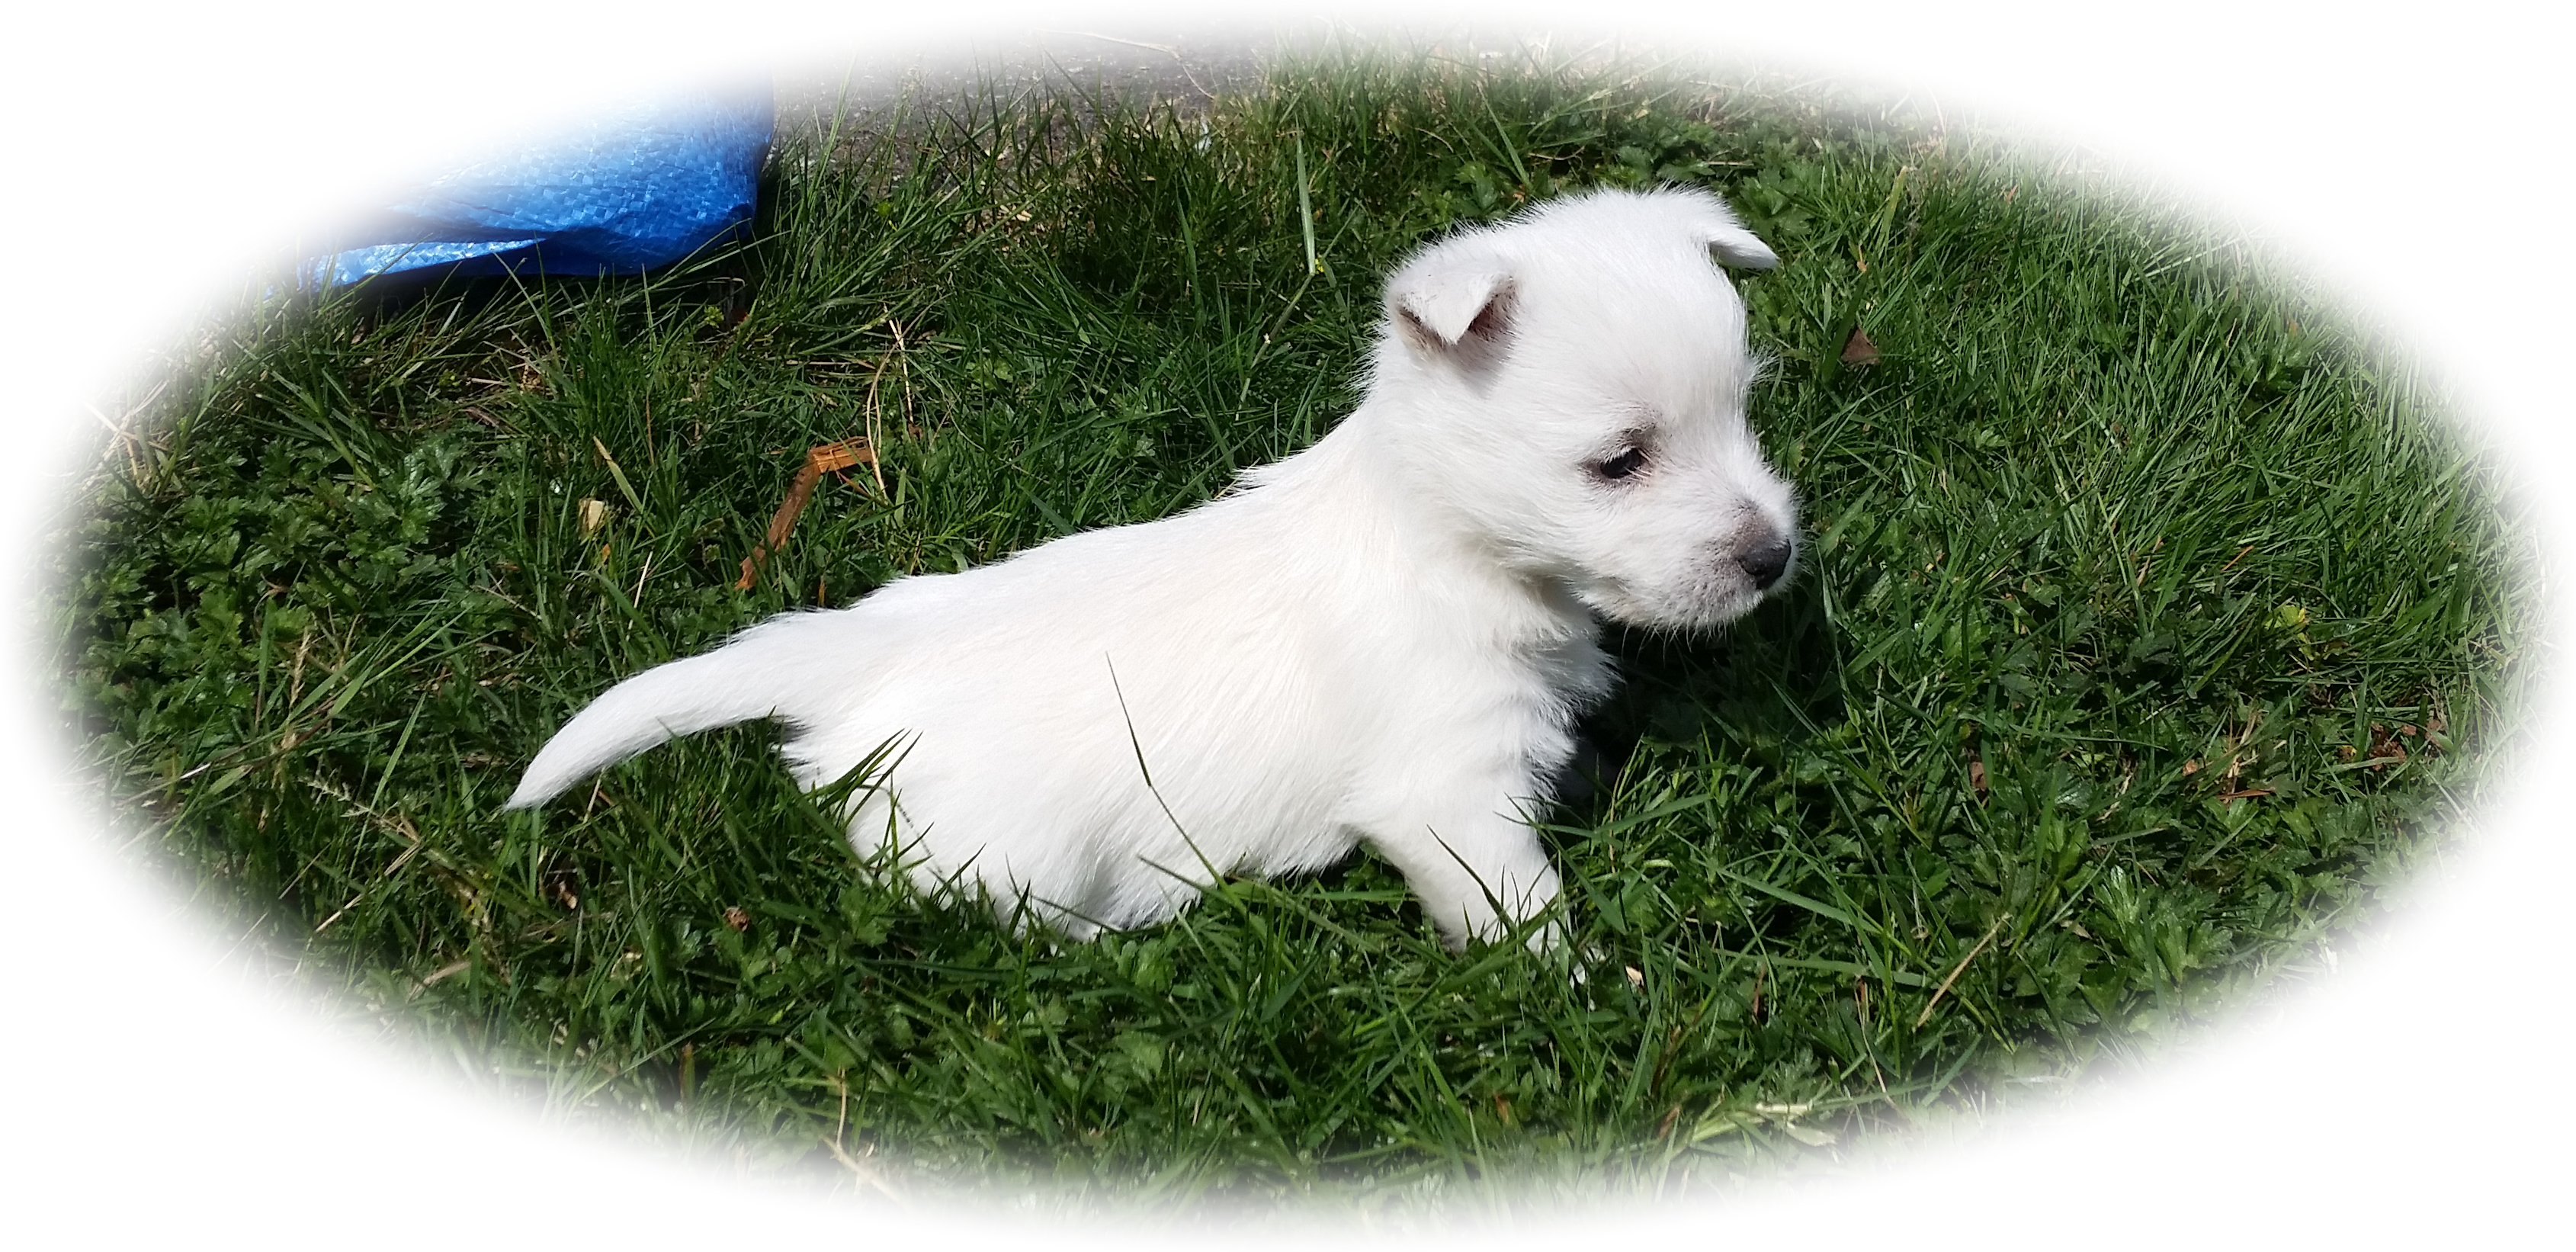 west highland white terrier puppy in the grass